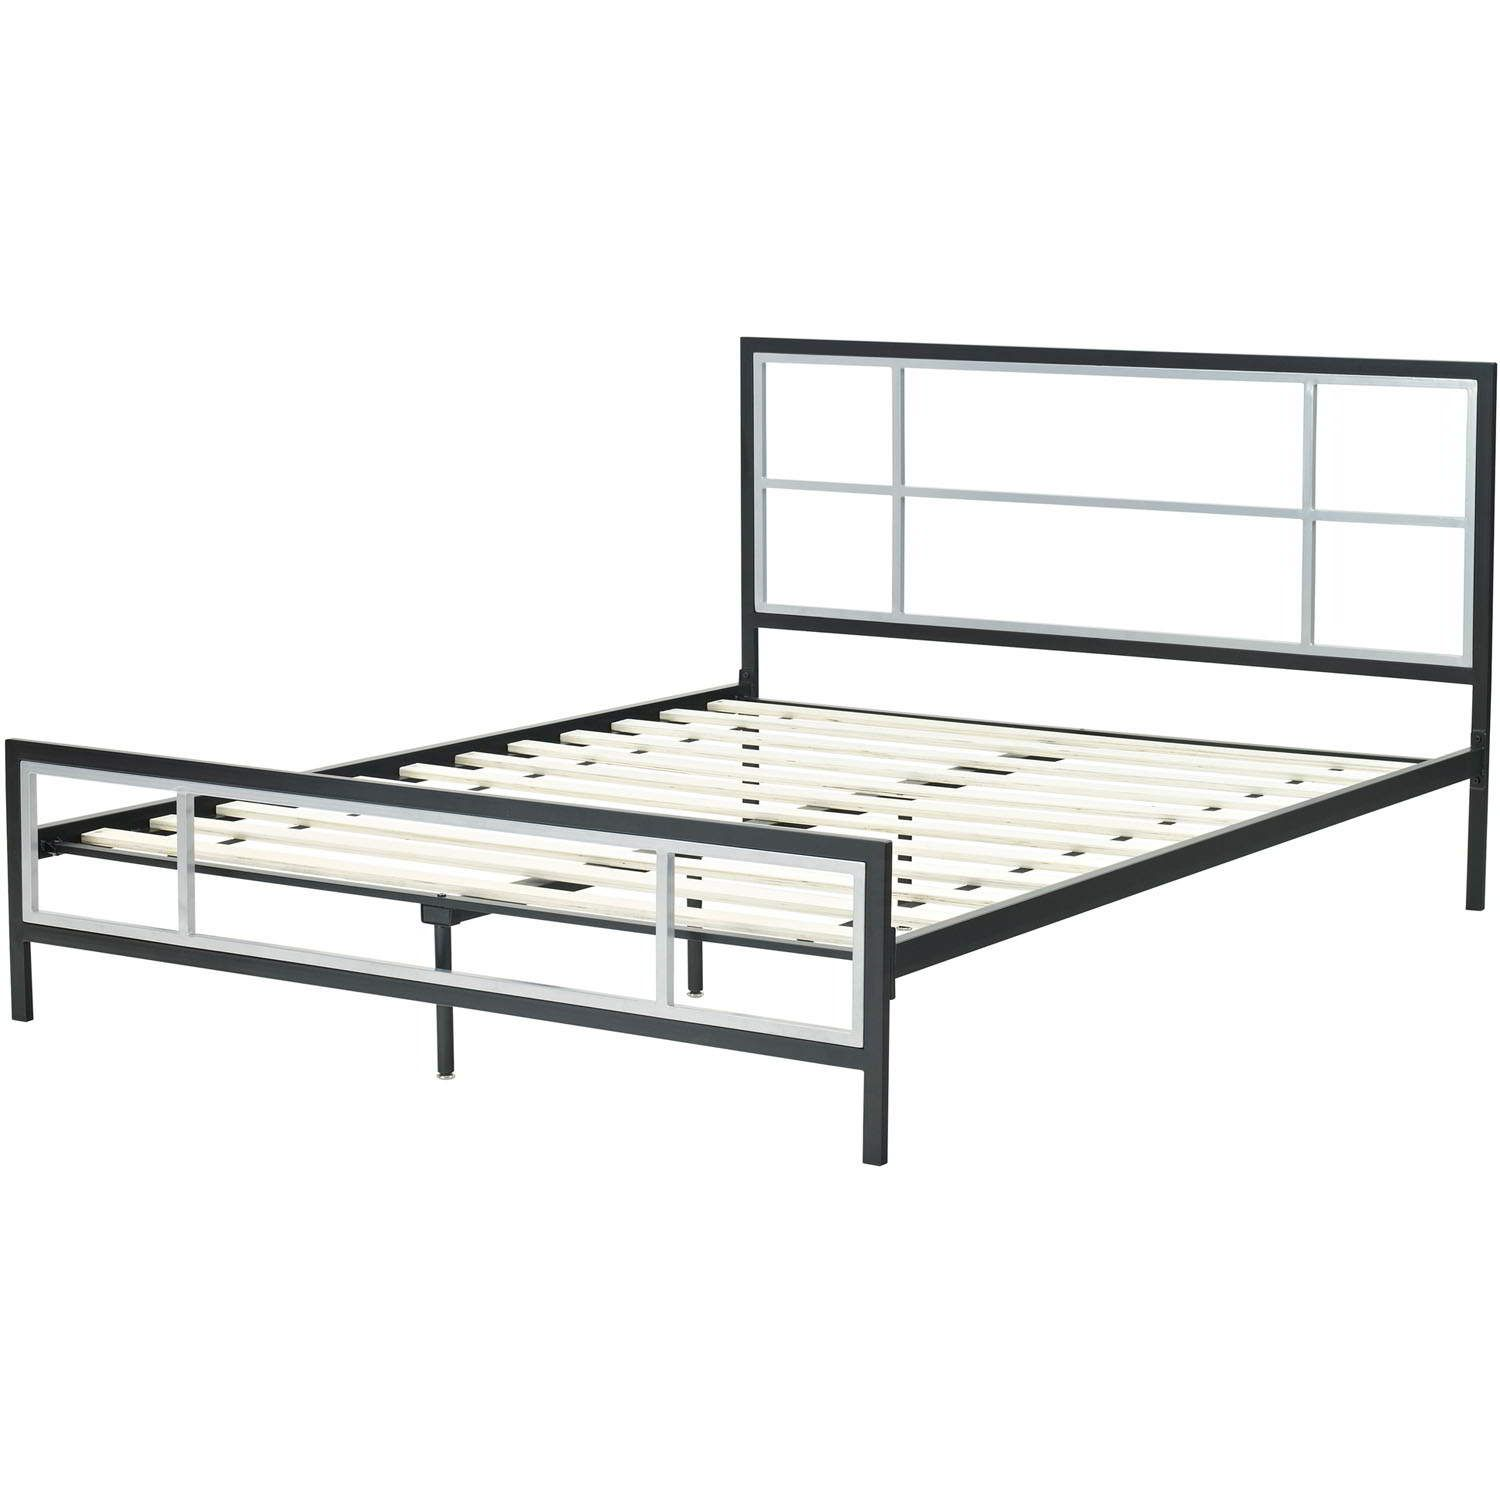 Bed Frame : Queen Size Platform Bed Frame With Storage Queen Size ...